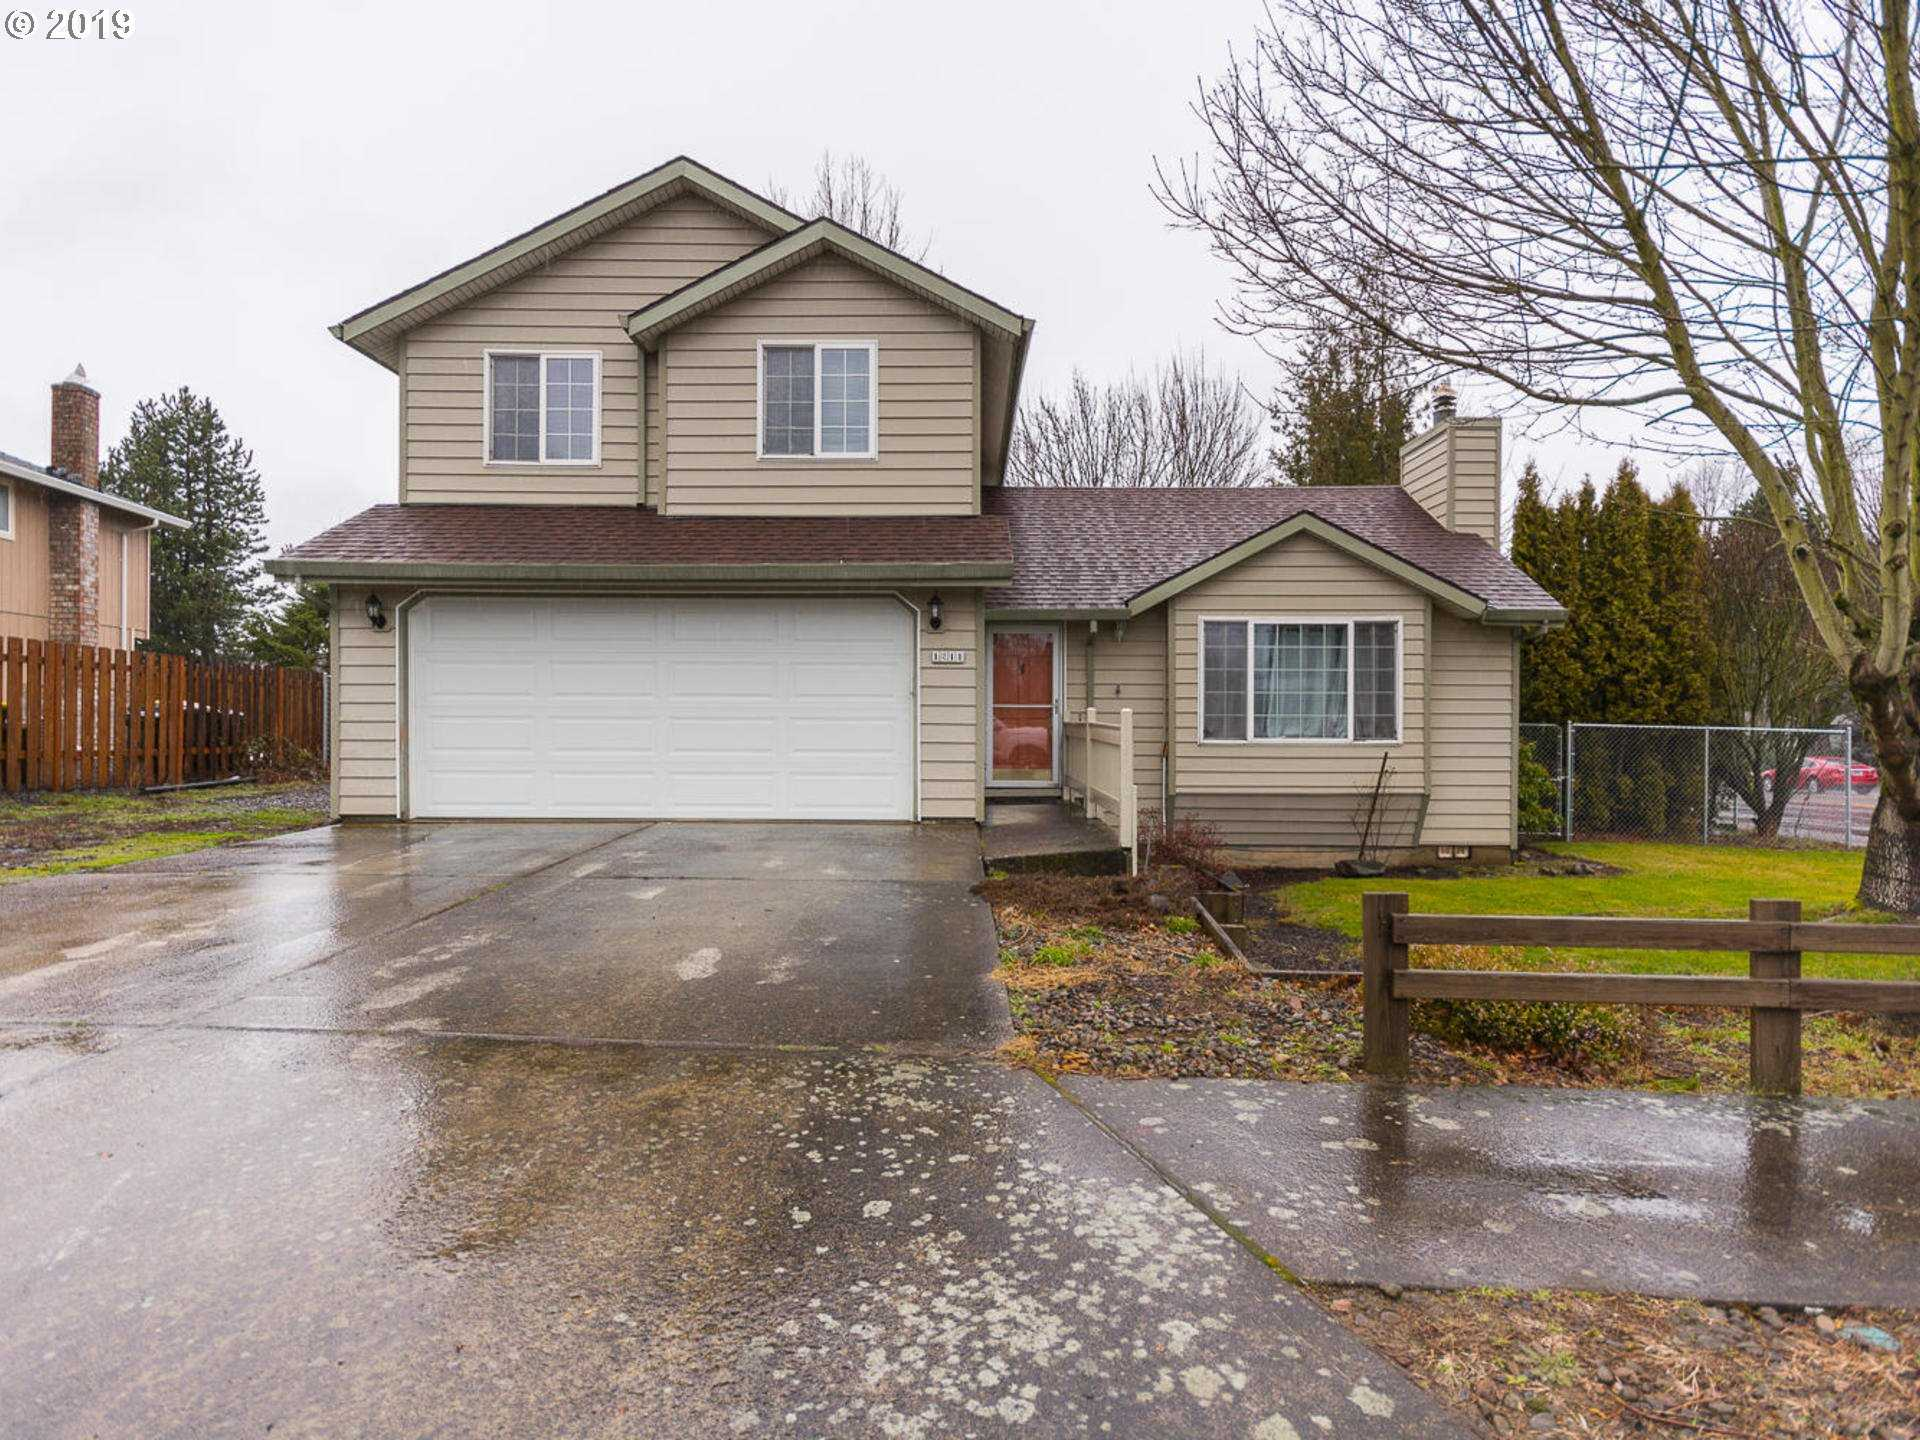 $335,000 - 4Br/3Ba -  for Sale in Troutdale